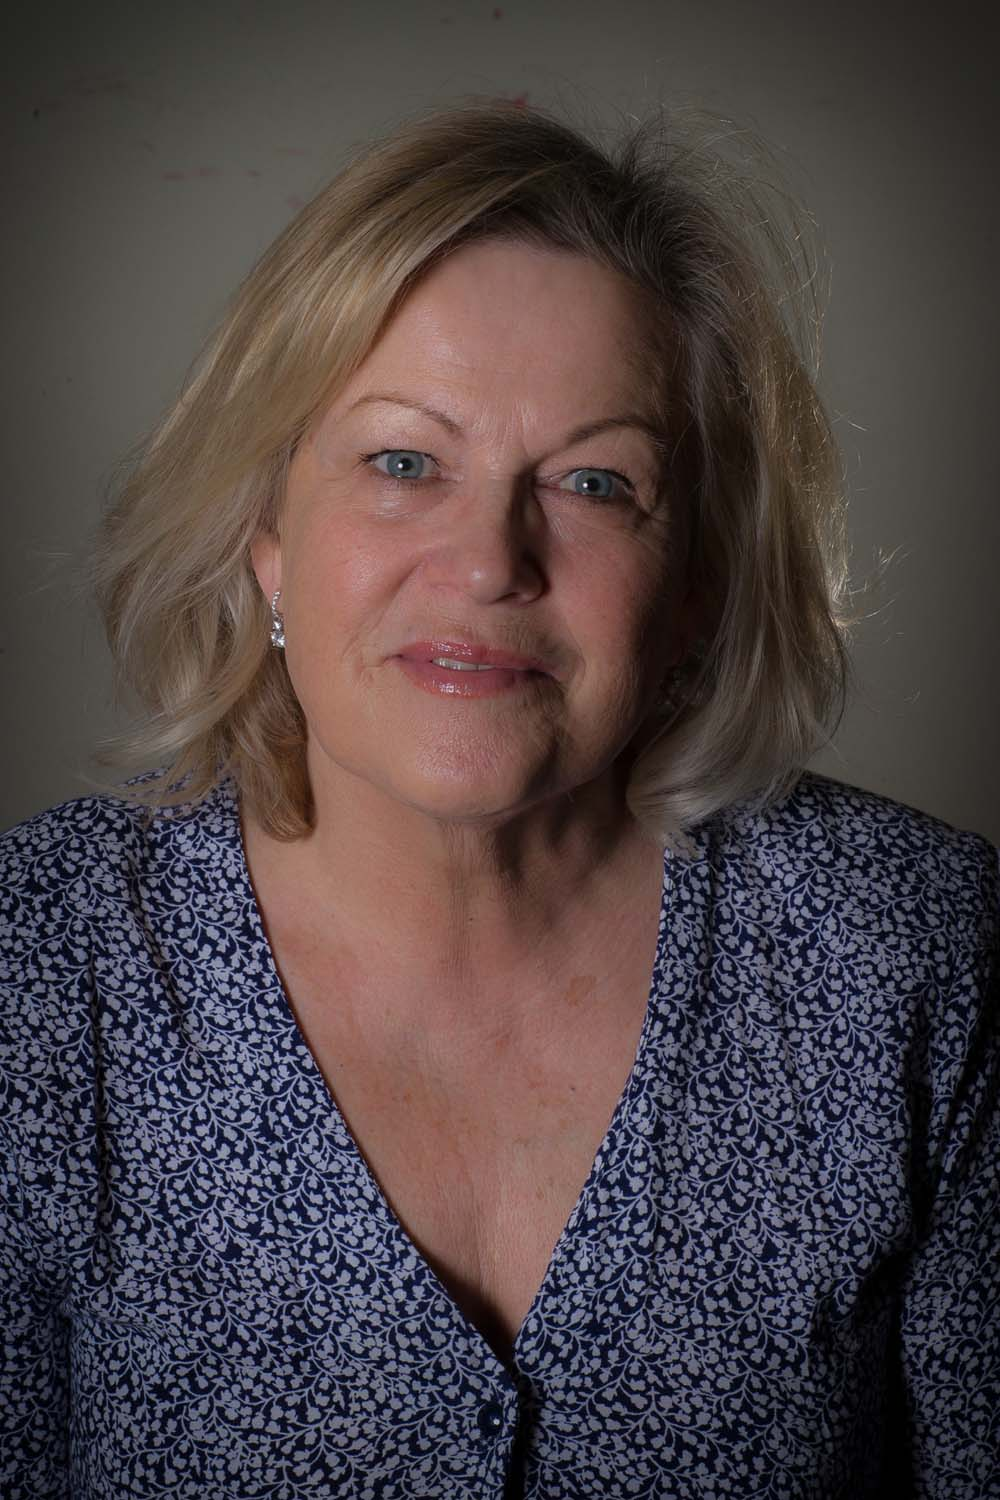 Eileen Symonds in Newport Playgoers presentation of Death of a Salesman by Arthur Miller which runs at Newport's Dolman Theatre from April 9-12. Photographs copyright: Paul Johnson 2019